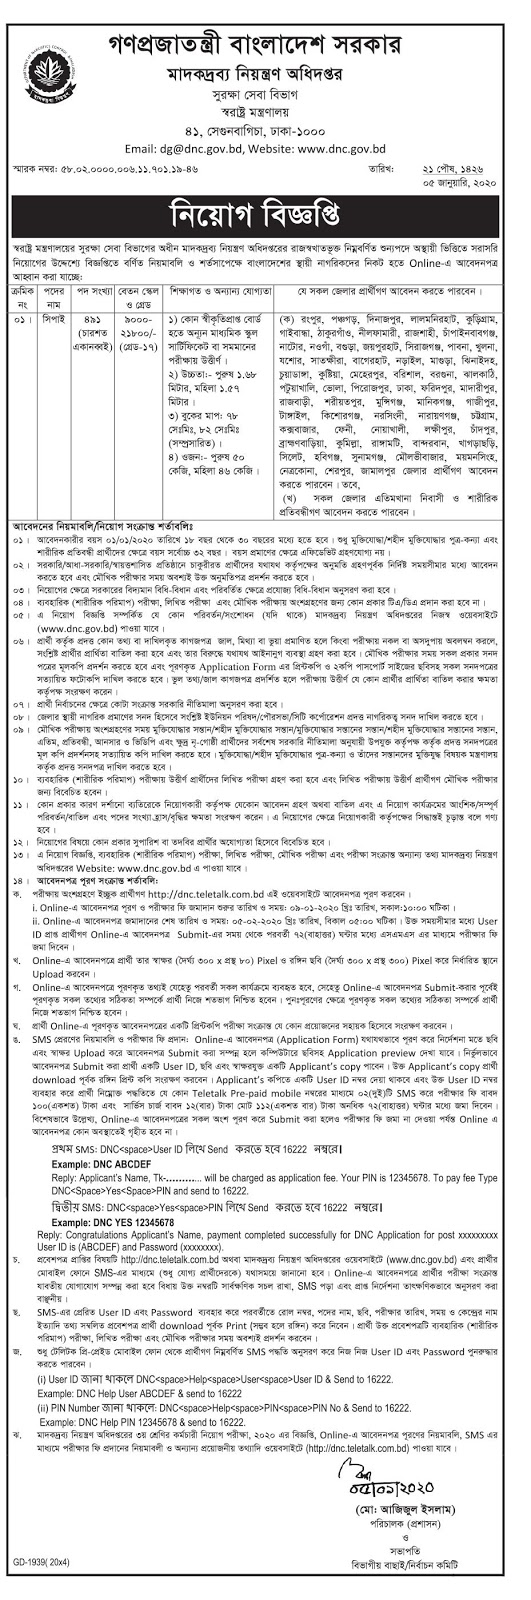 www.dnc.gov.bd teletalk admit card, tz3ctg teletalk com bd, bscic admit card , dnc job circular 2020, narcotics admit,dnc exam date 2020, dss.teletalk.com.bd apply, dnc admit card 2019 download, www.dnc.gov.bd job circular 2020, dnc admit card for sub inspector 2020, dnc sub inspector exam date 2020, dncc job circular 2020, dnc seat plan 2020, dns teletalk bd, dnc sub inspector job circular 2019, dncc job circular 2019 , bncc job circular 2019, dns.teletalk.com.bd job circular, dnc.gov.bd notice, bscic admit card 2020, dnc circular 2020, dnc admit card of sub inspector 2020, dnc exam admit card 2020, dnc info admit card 2020, dnc accountant exam question 2020, dnc sub inspector admit card 2020, dnc si exam date 2020, mongla bandar job circular 2020, dnc result 2020, www.dnc.gov.bd notice, dnc written exam date, www.dnc.gov.bd teletalk admit card, tz3ctg teletalk com bd, bscic admit card, dnc job circular 2020, narcotics admit, dnc exam date , dss.teletalk.com.bd apply, dnc admit card 2019 download, www.dnc.gov.bd job circular 2020, dnc admit card for sub inspector, dnc sub inspector exam date 2020, dncc job circular 2020, dnc seat plan 2020, dns teletalk bd 2020, dnc sub inspector job circular 2020, dncc job circular 2020 pdf, bncc job circular 2020, dns.teletalk.com.bd job circular 2020, dnc.gov.bd notice 2020, bscic admit card 2020, dnc circular 2020, dnc admit card of sub inspector 2020, dnc exam admit card 2020 dnc info admit card 2020, dnc accountant exam question, dnc sub inspector admit card 2020, dnc si exam date 2020, mongla bandar job circular 2020, dnc result 2020, www.dnc.gov.bd notice, dnc written exam date, www.dnc.gov.bd job circular 2020, dnc job circular 2020, dnc.teletalk.com.bd job circular, dnc sub inspector job circular 2020, department of narcotics control job circular 2020, madok niyontron job circular 2020, madok job circular 2020, department of narcotics control job circular 2020,